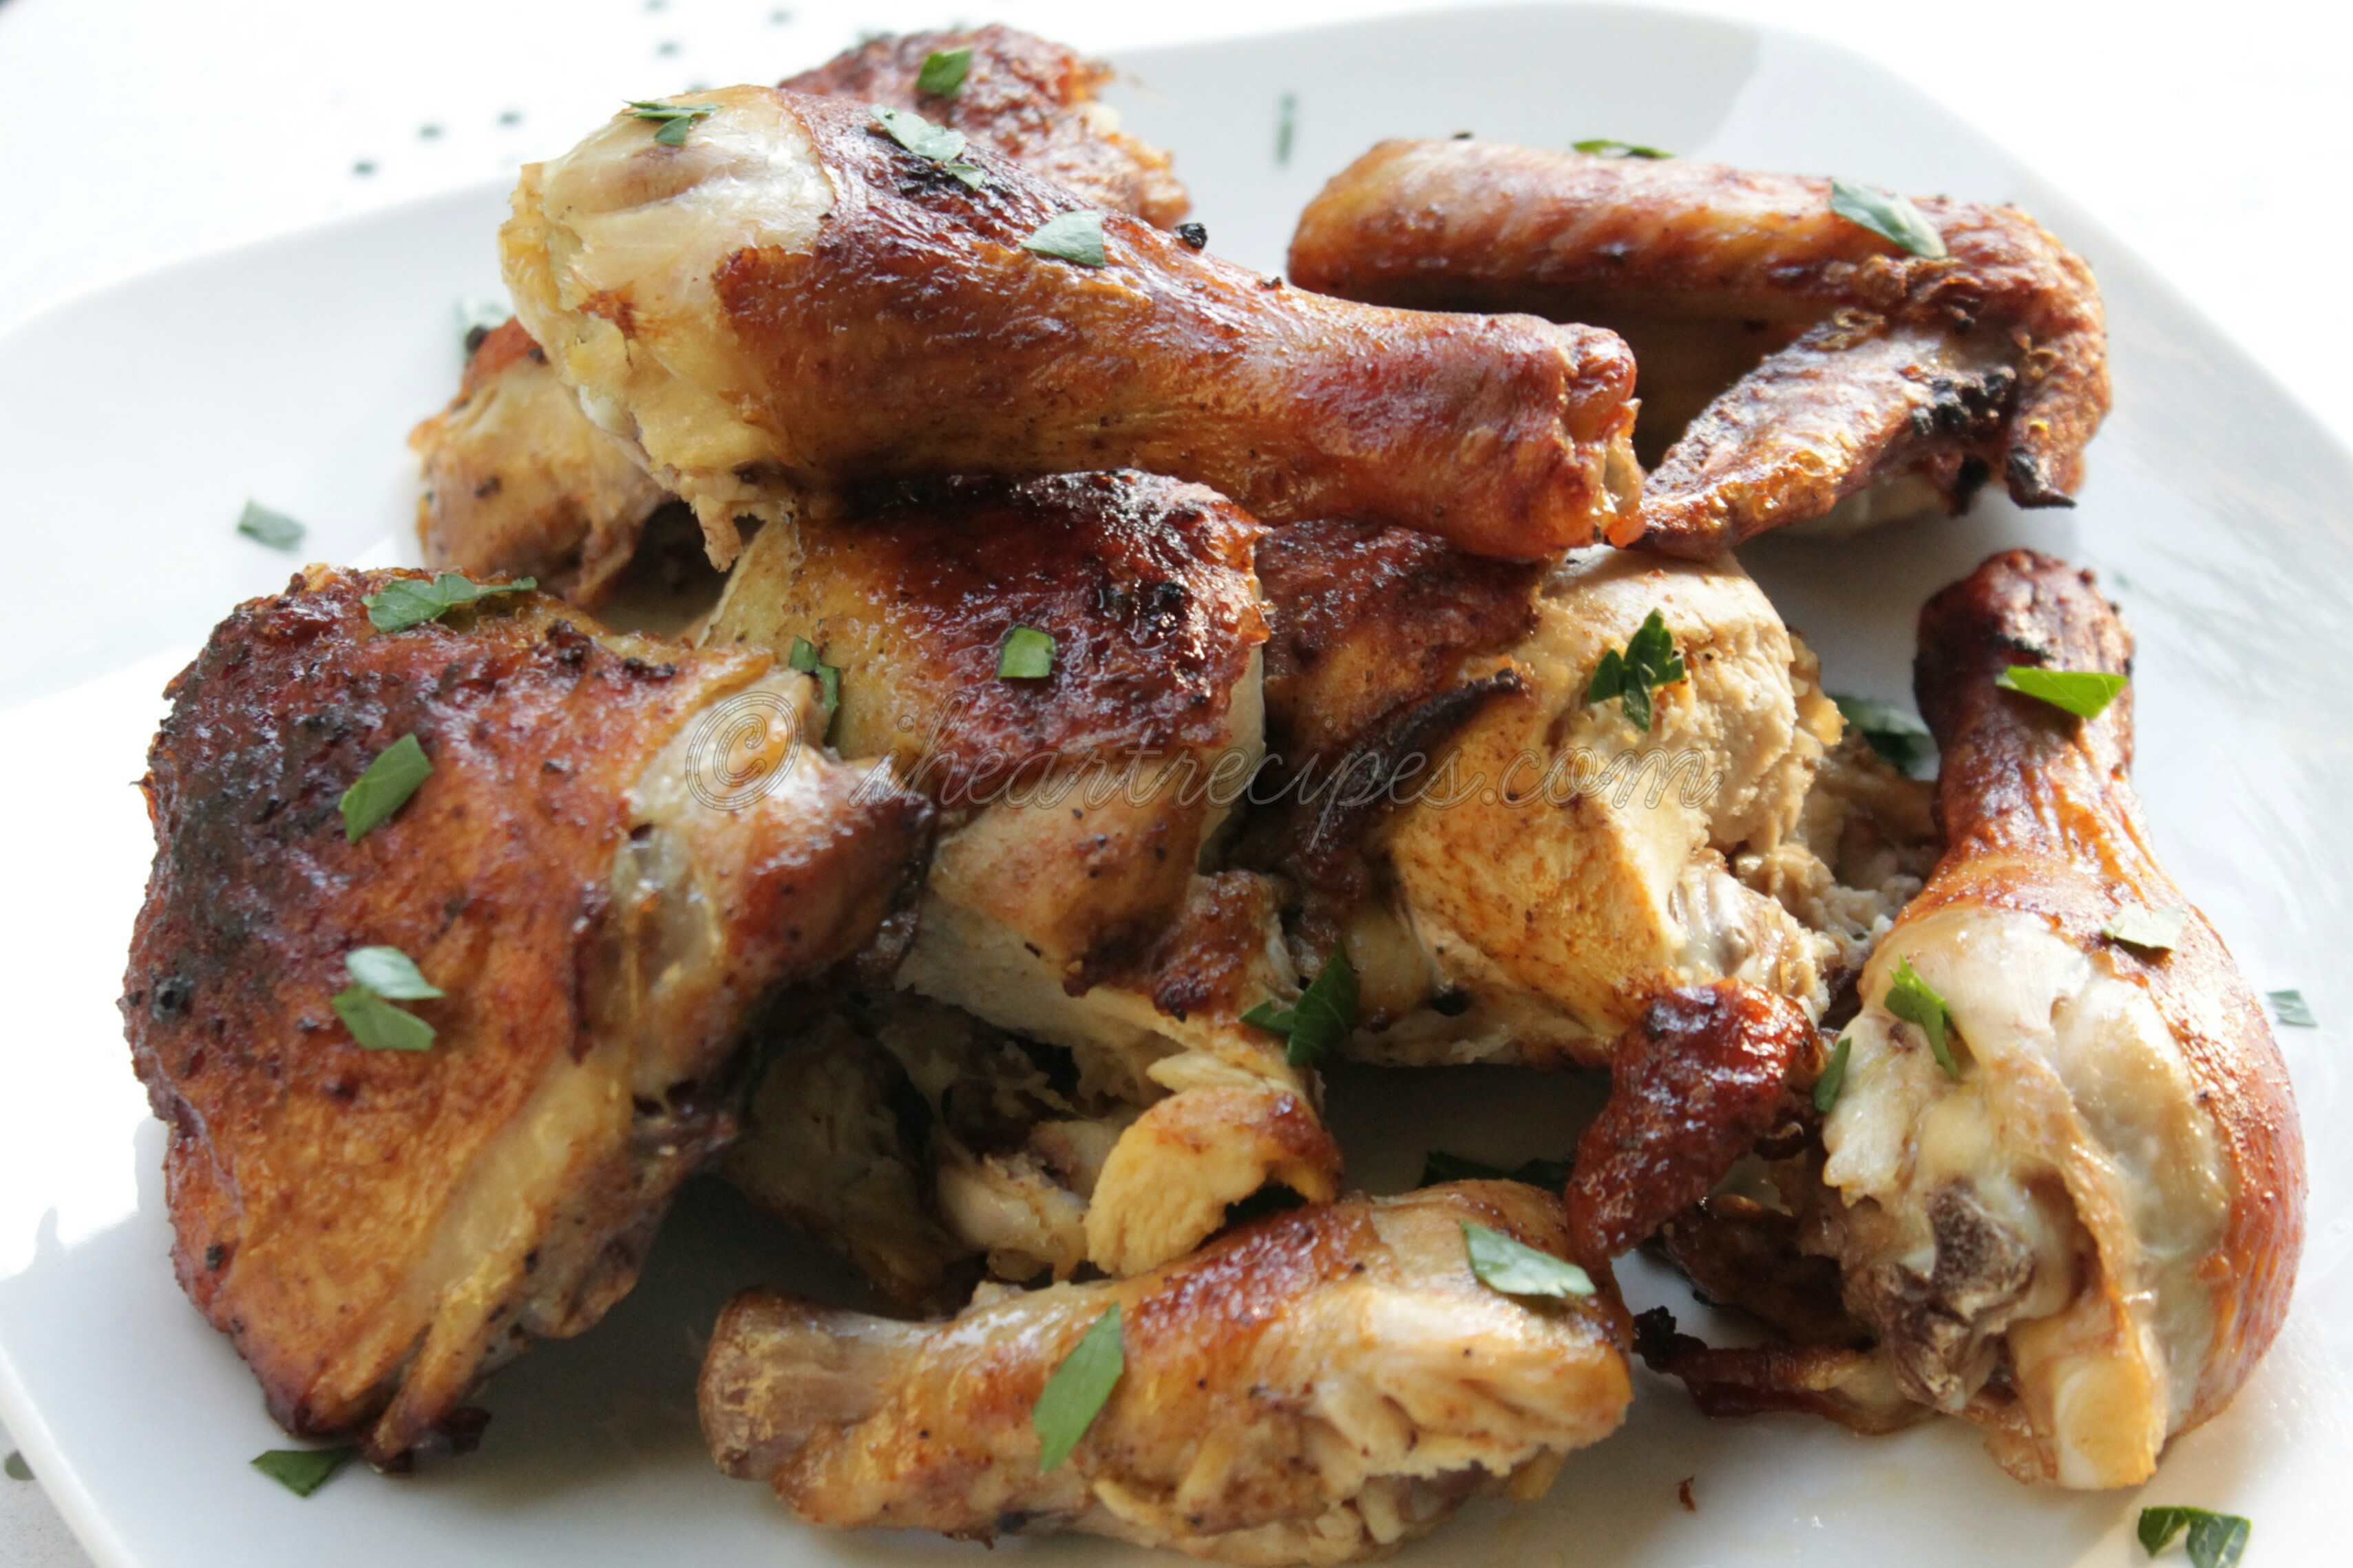 Simple Roast Chicken makes a great family meal.